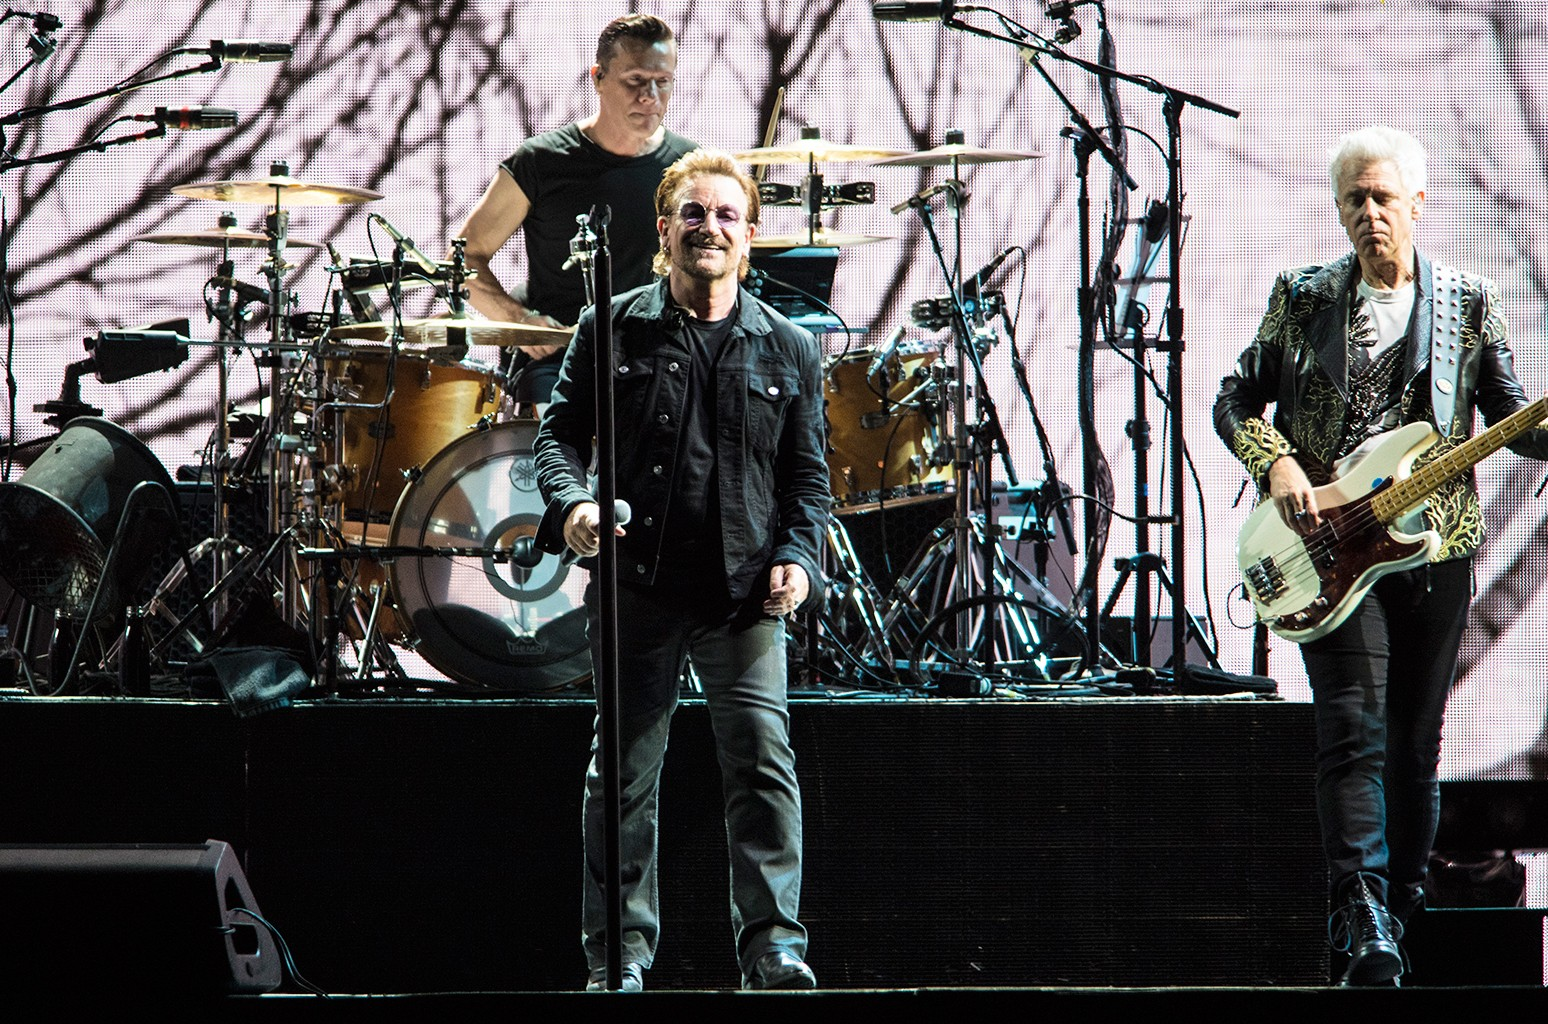 Larry Mullen Jr, Bono and Adam Clayton of U2 perform during The Joshua Tree Tour 2017 at Mercedes-Benz Superdome on Sept. 14, 2017 in New Orleans.